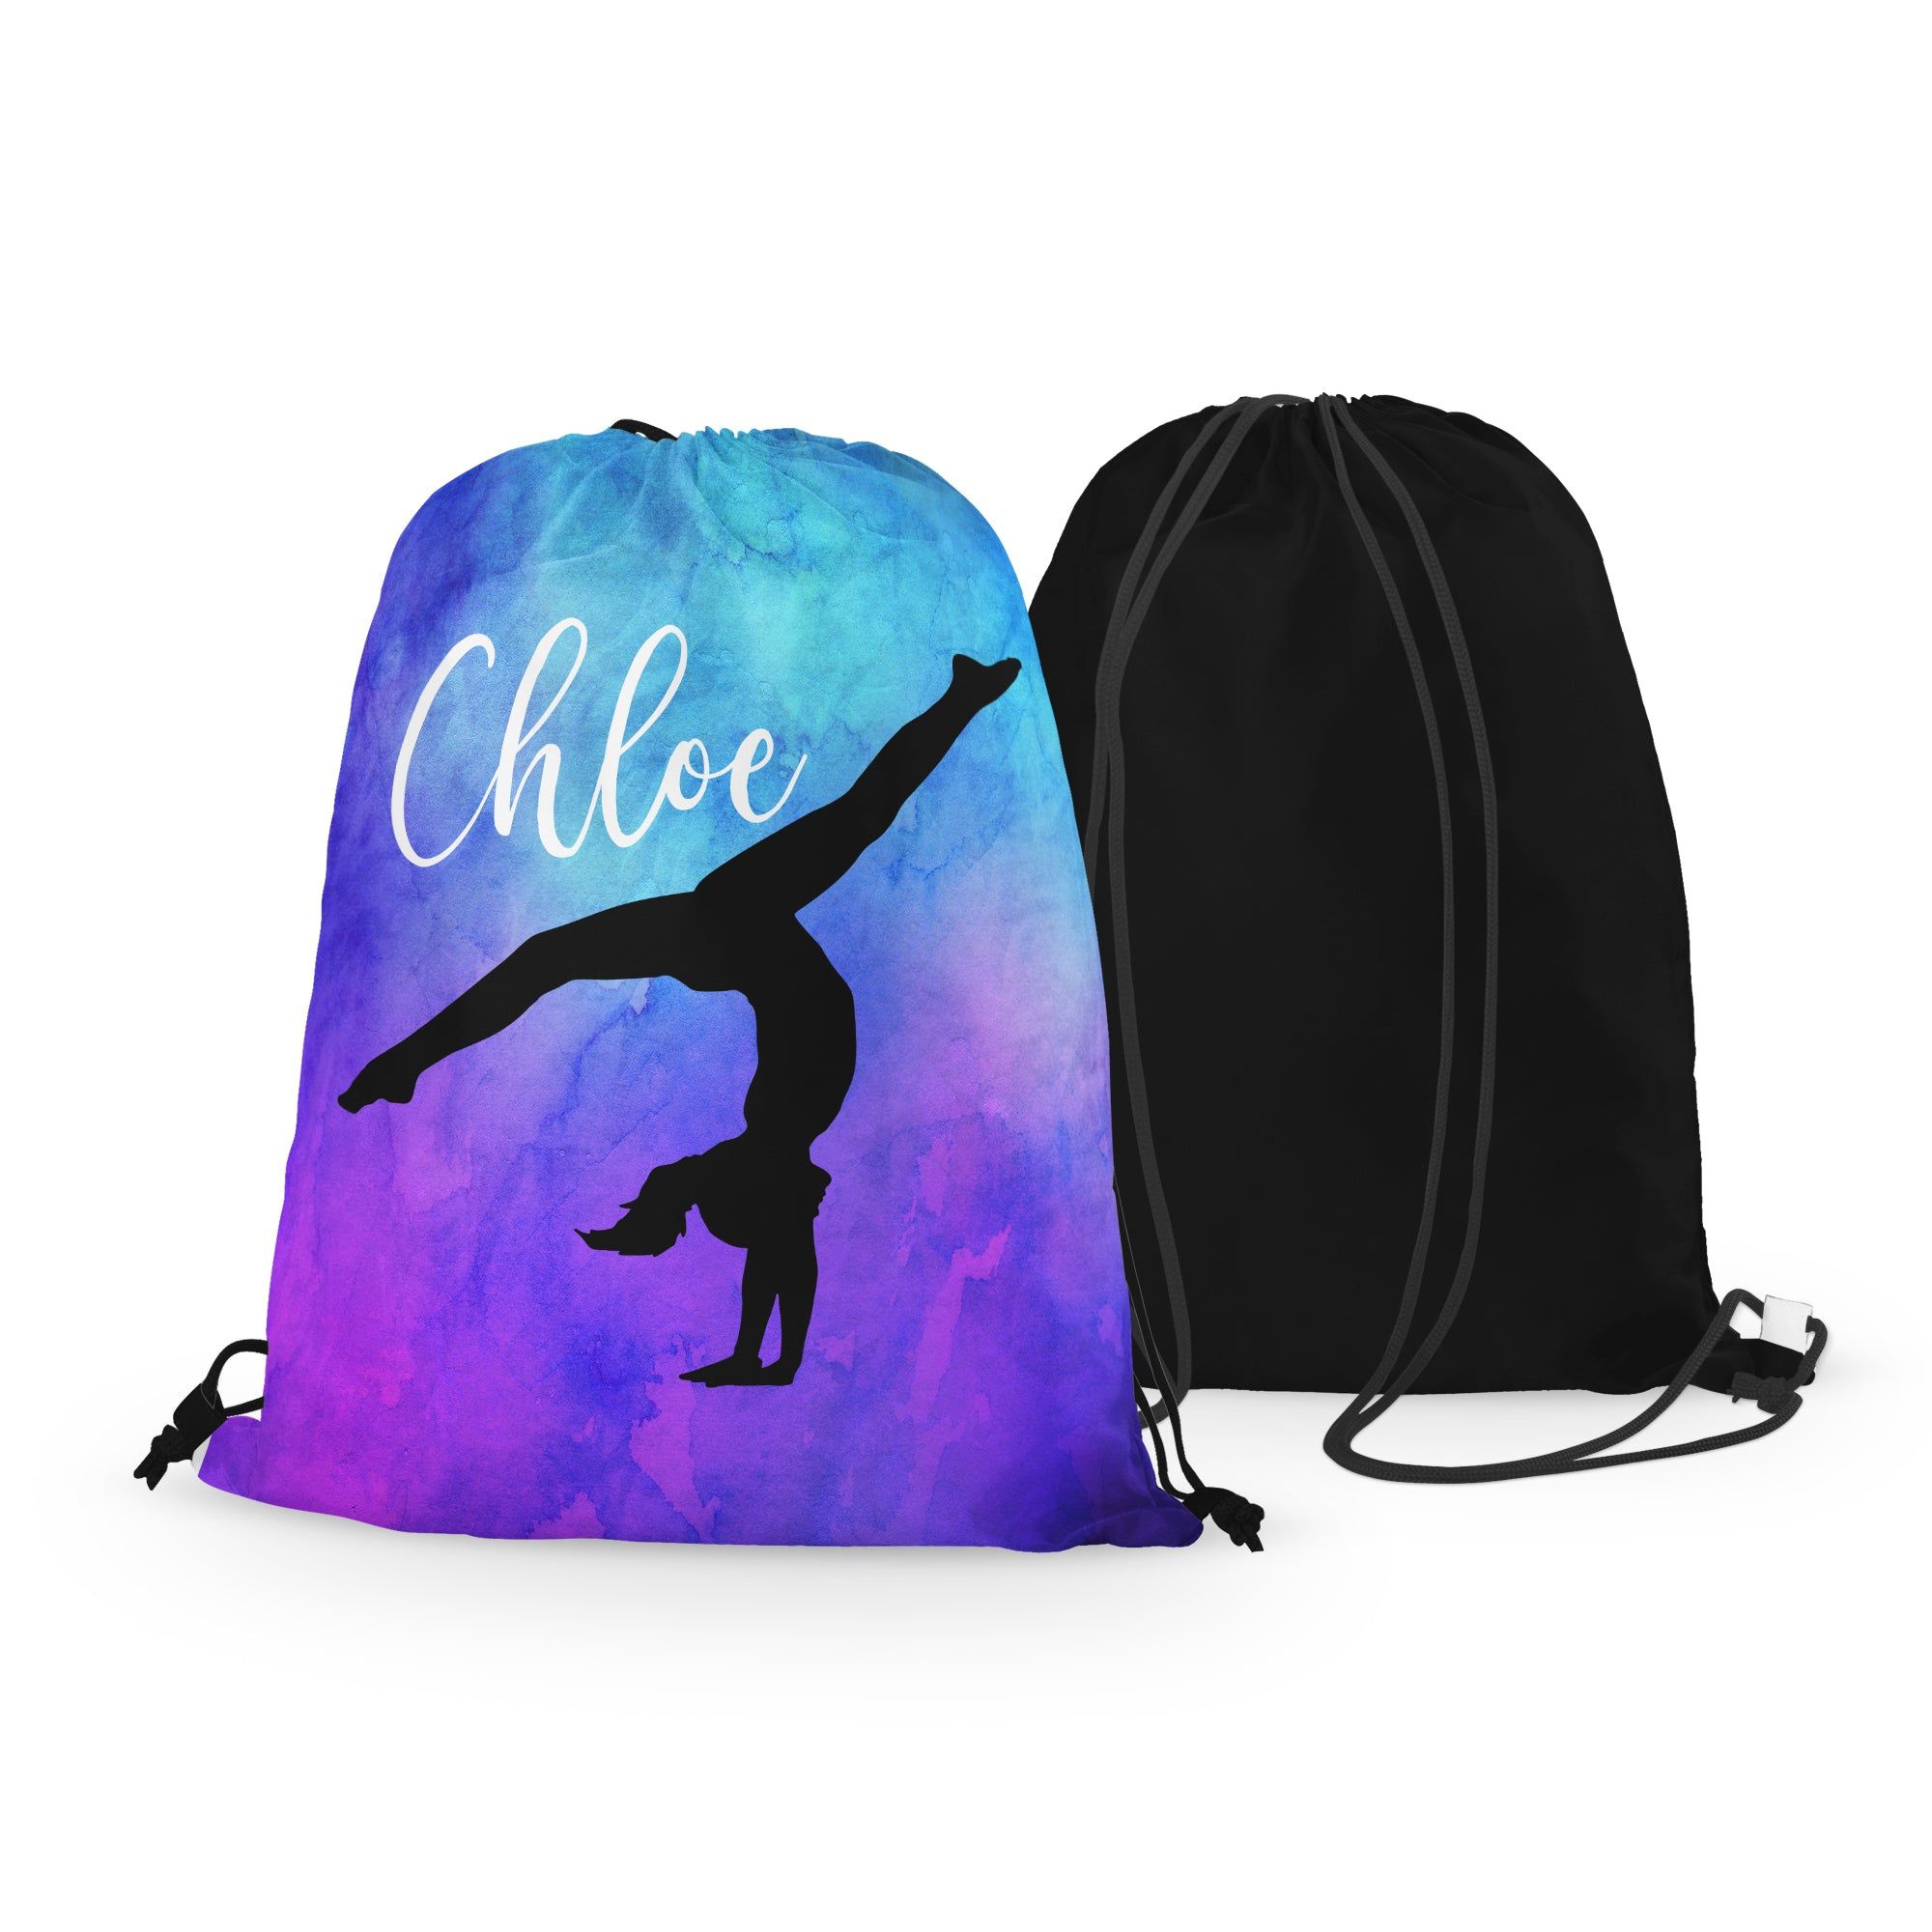 Personalized Gymnast Drawstring Bag